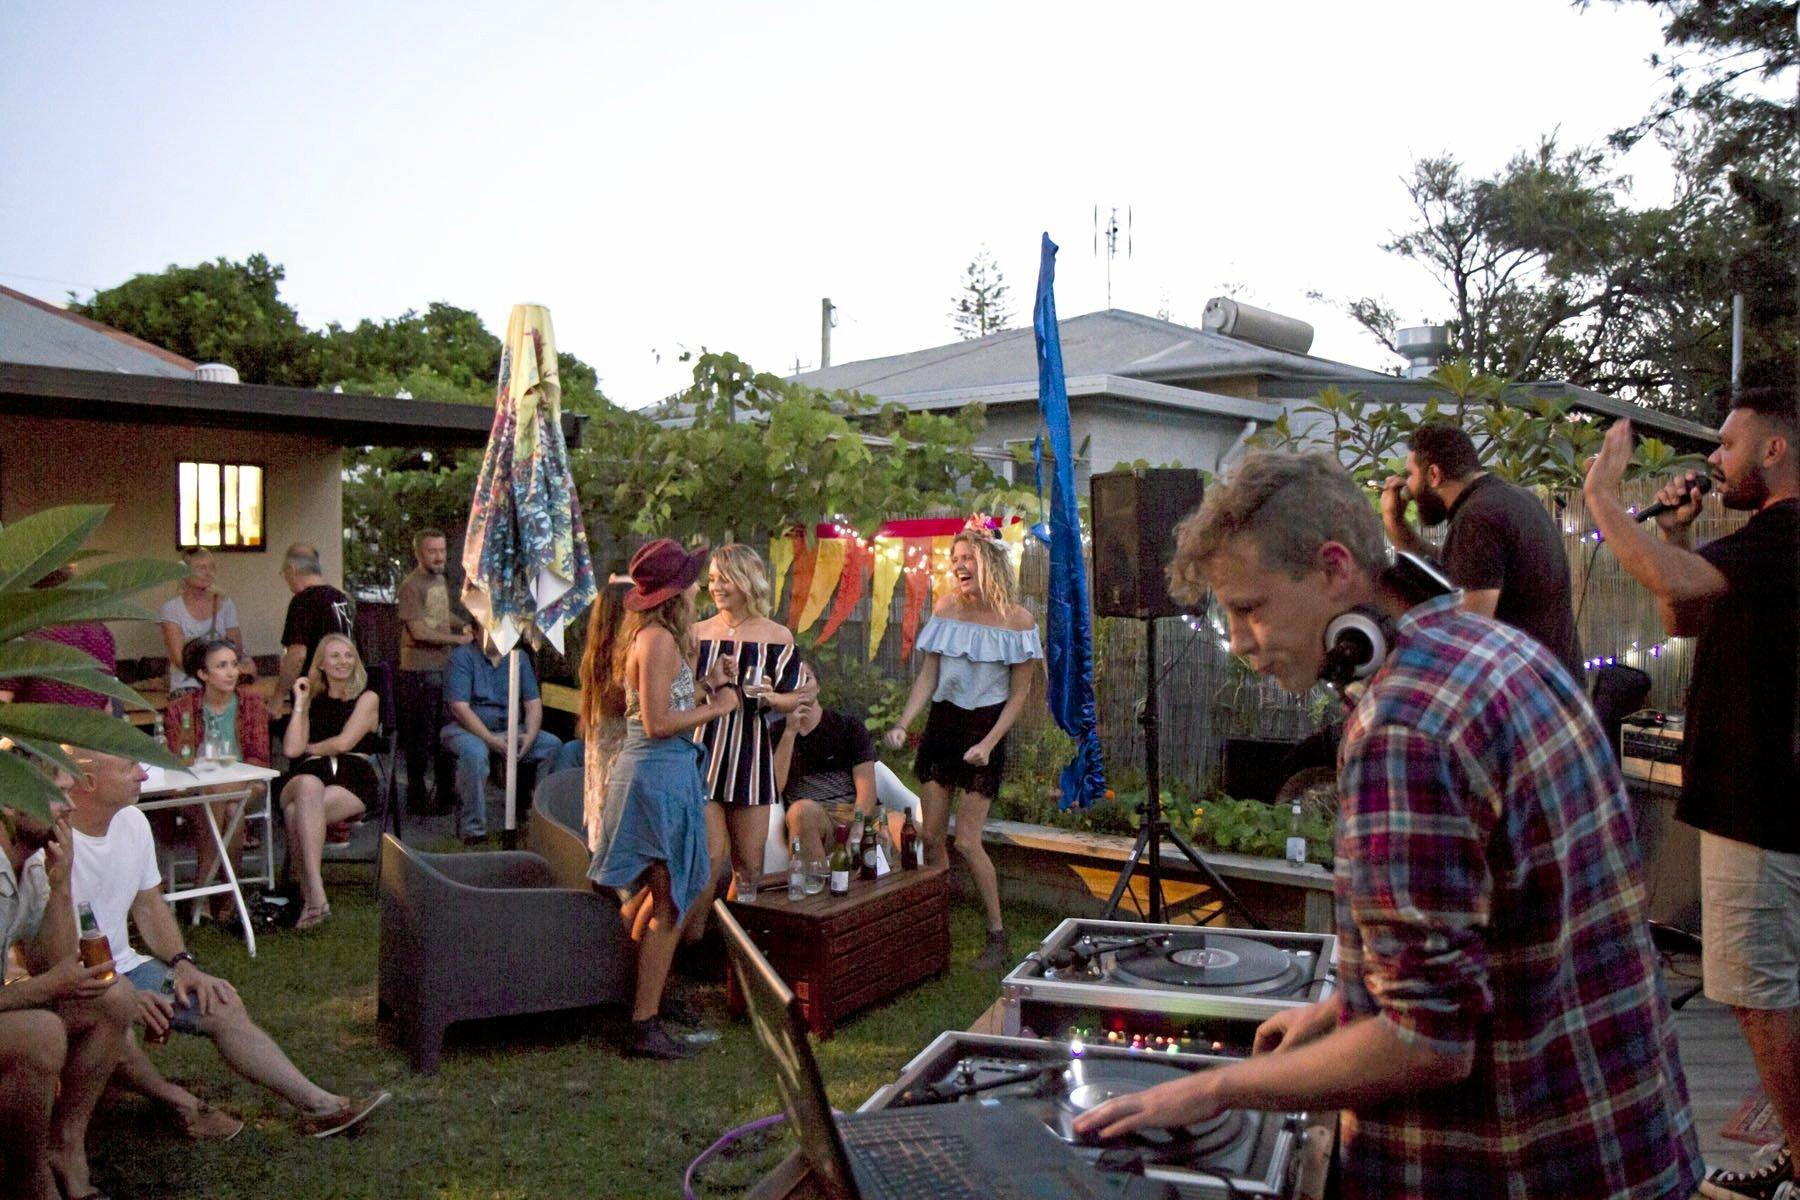 SPIN IT: Enjoying the tunes in the late afternoon at Leche. Photo: Dave Brandon